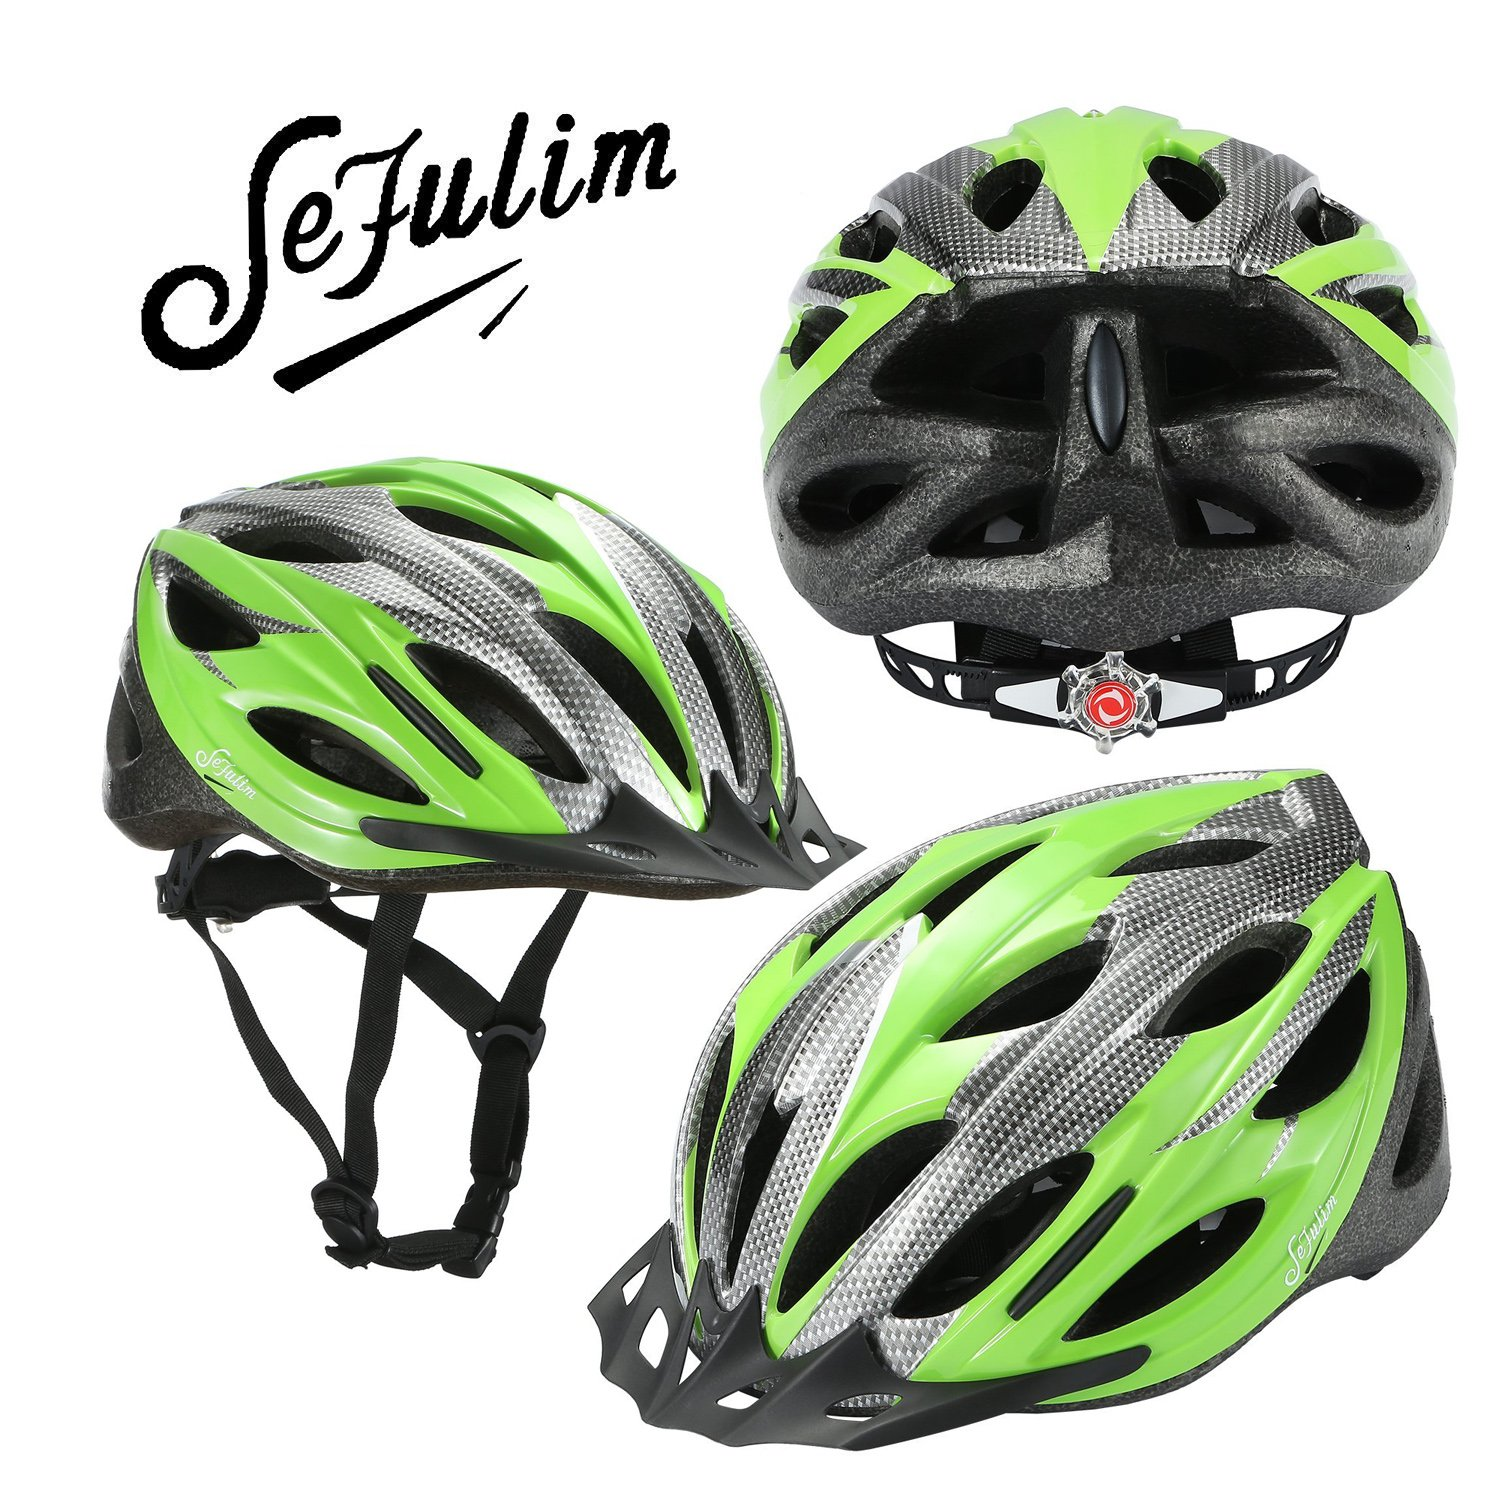 Sefulim Specialized Cycle Helmet Adult Racing Bike Cycling Helmets by Adjustable Size for Girls Boys Spectacle-wearers White (Standard)